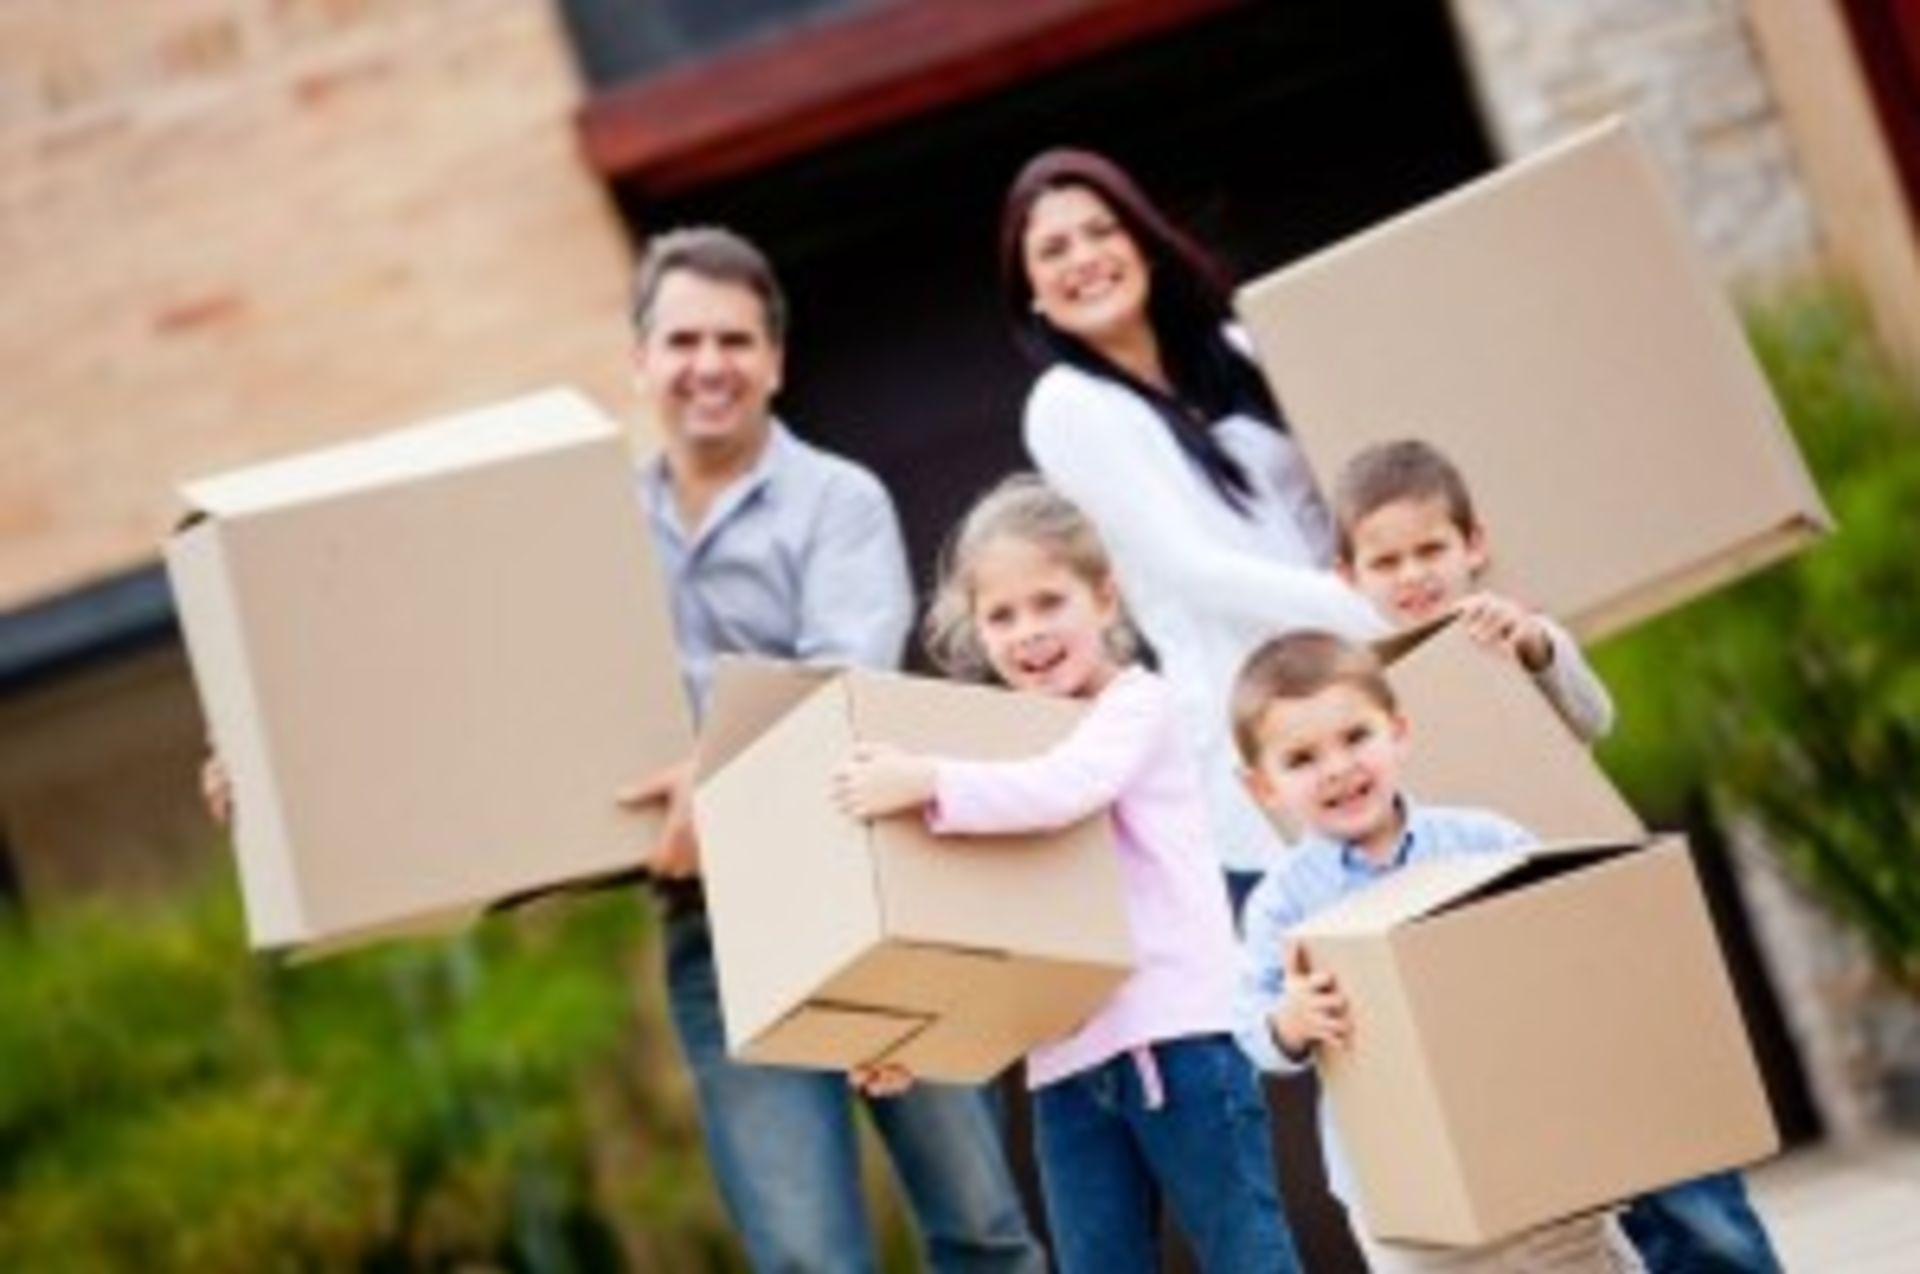 How to Move House Without Unsettling the Kids